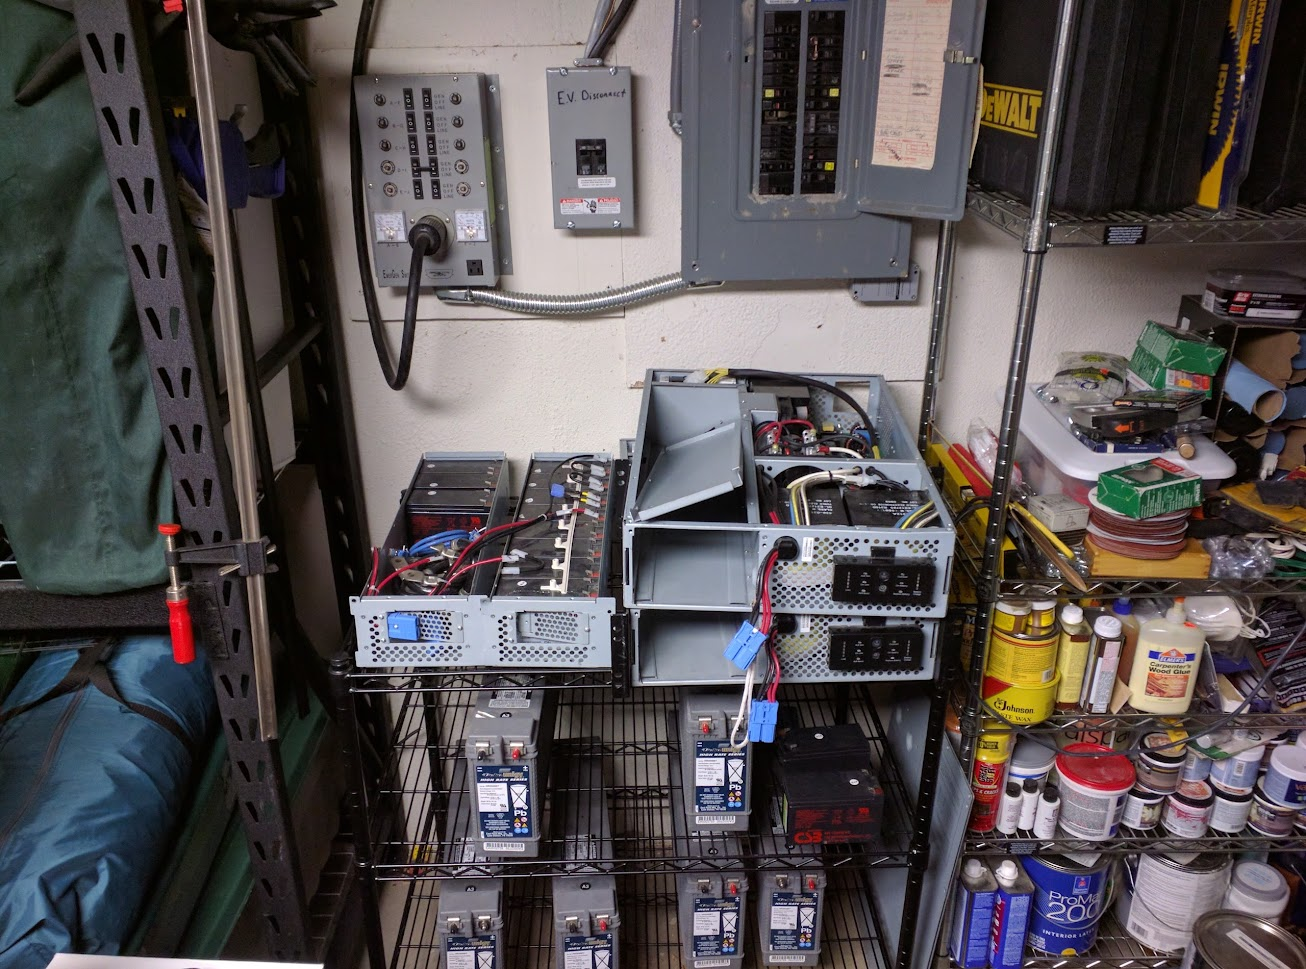 Up 2 100 Watt Panels Mppt Controller Wiring And Mounting Feet For